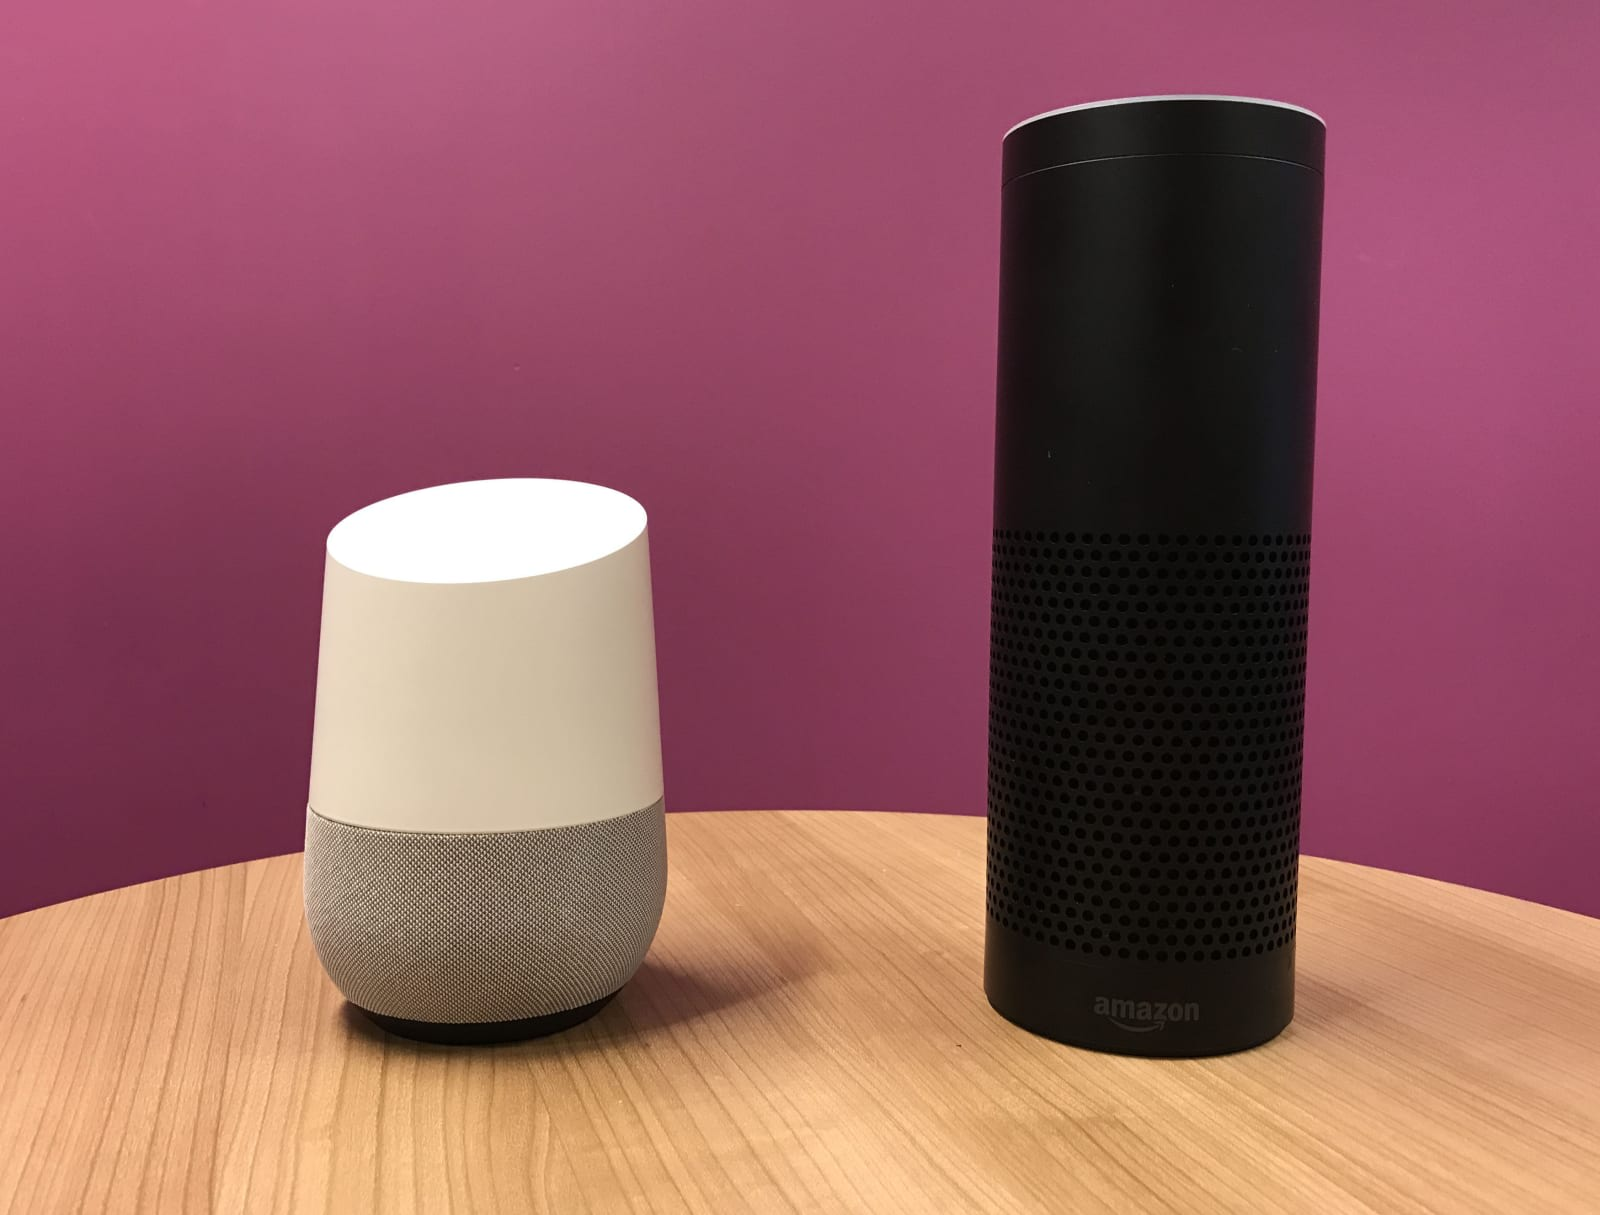 Amazon echo and google home were vulnerable to bluetooth exploit pa wirepa images fandeluxe Image collections